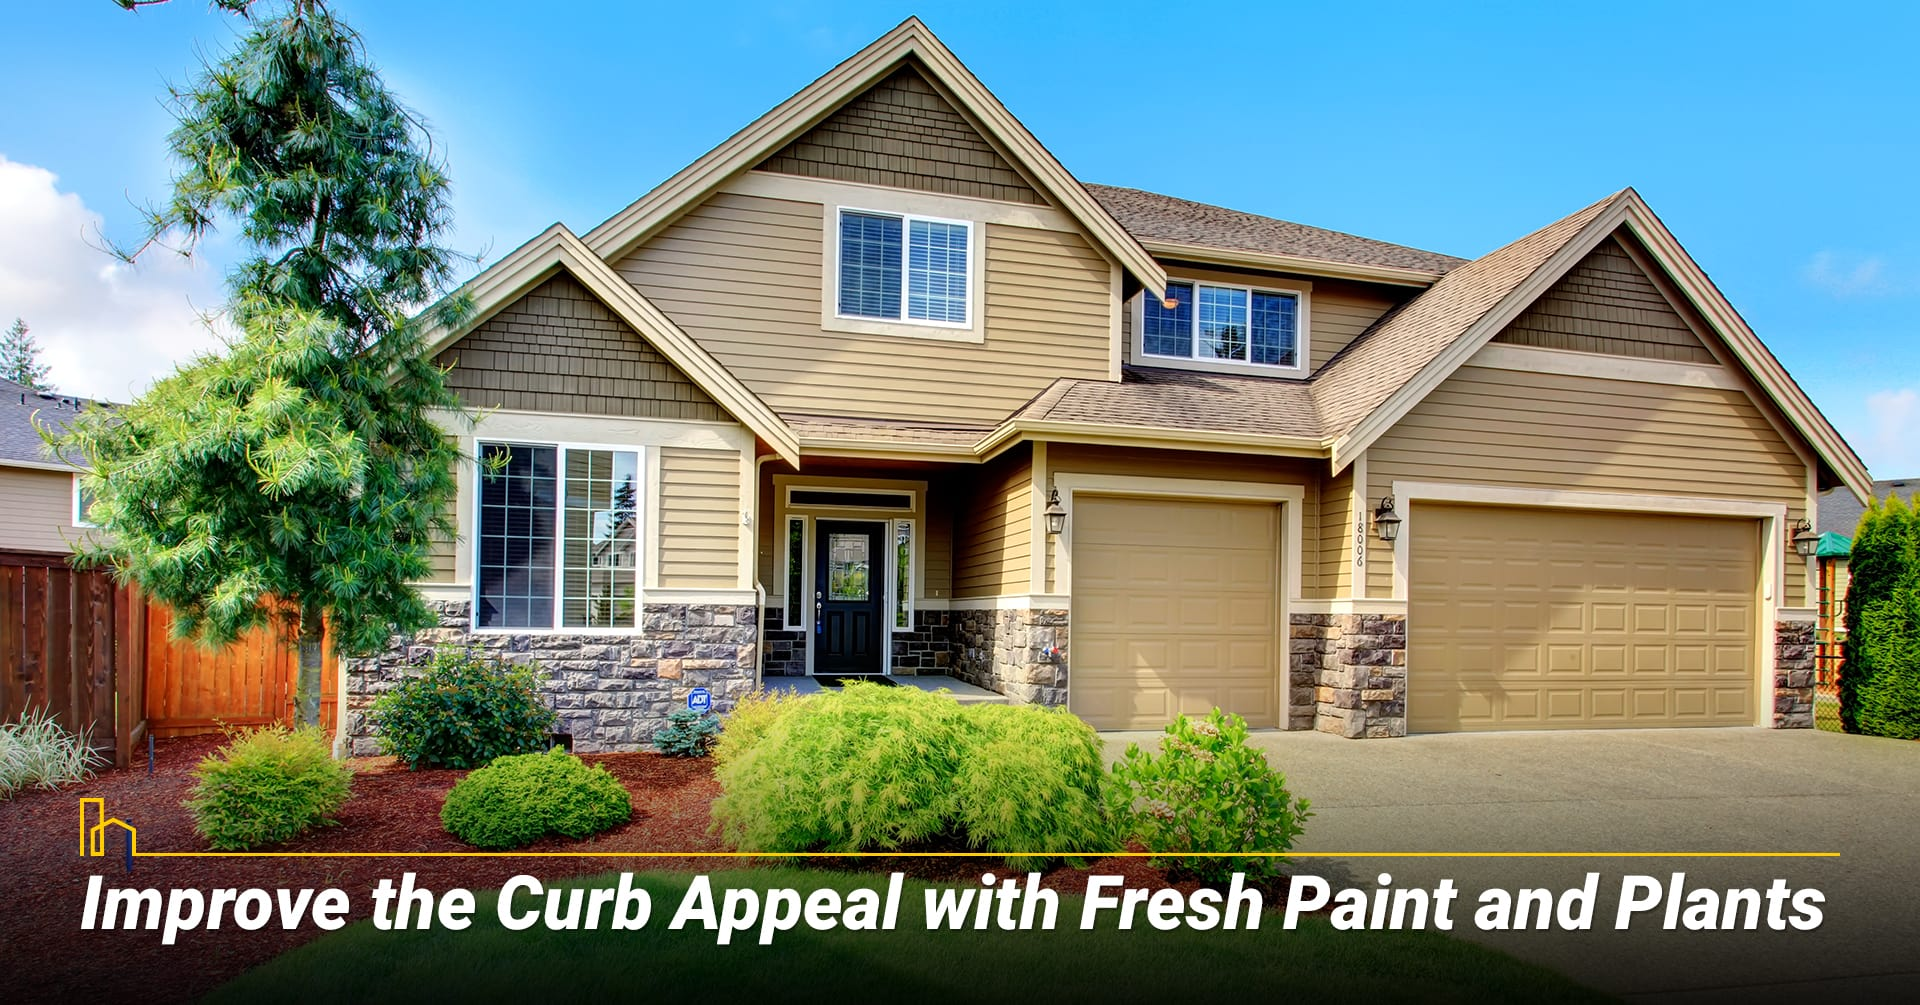 Improve the Curb Appeal with Fresh Paint and Plants, upgrade your exterior